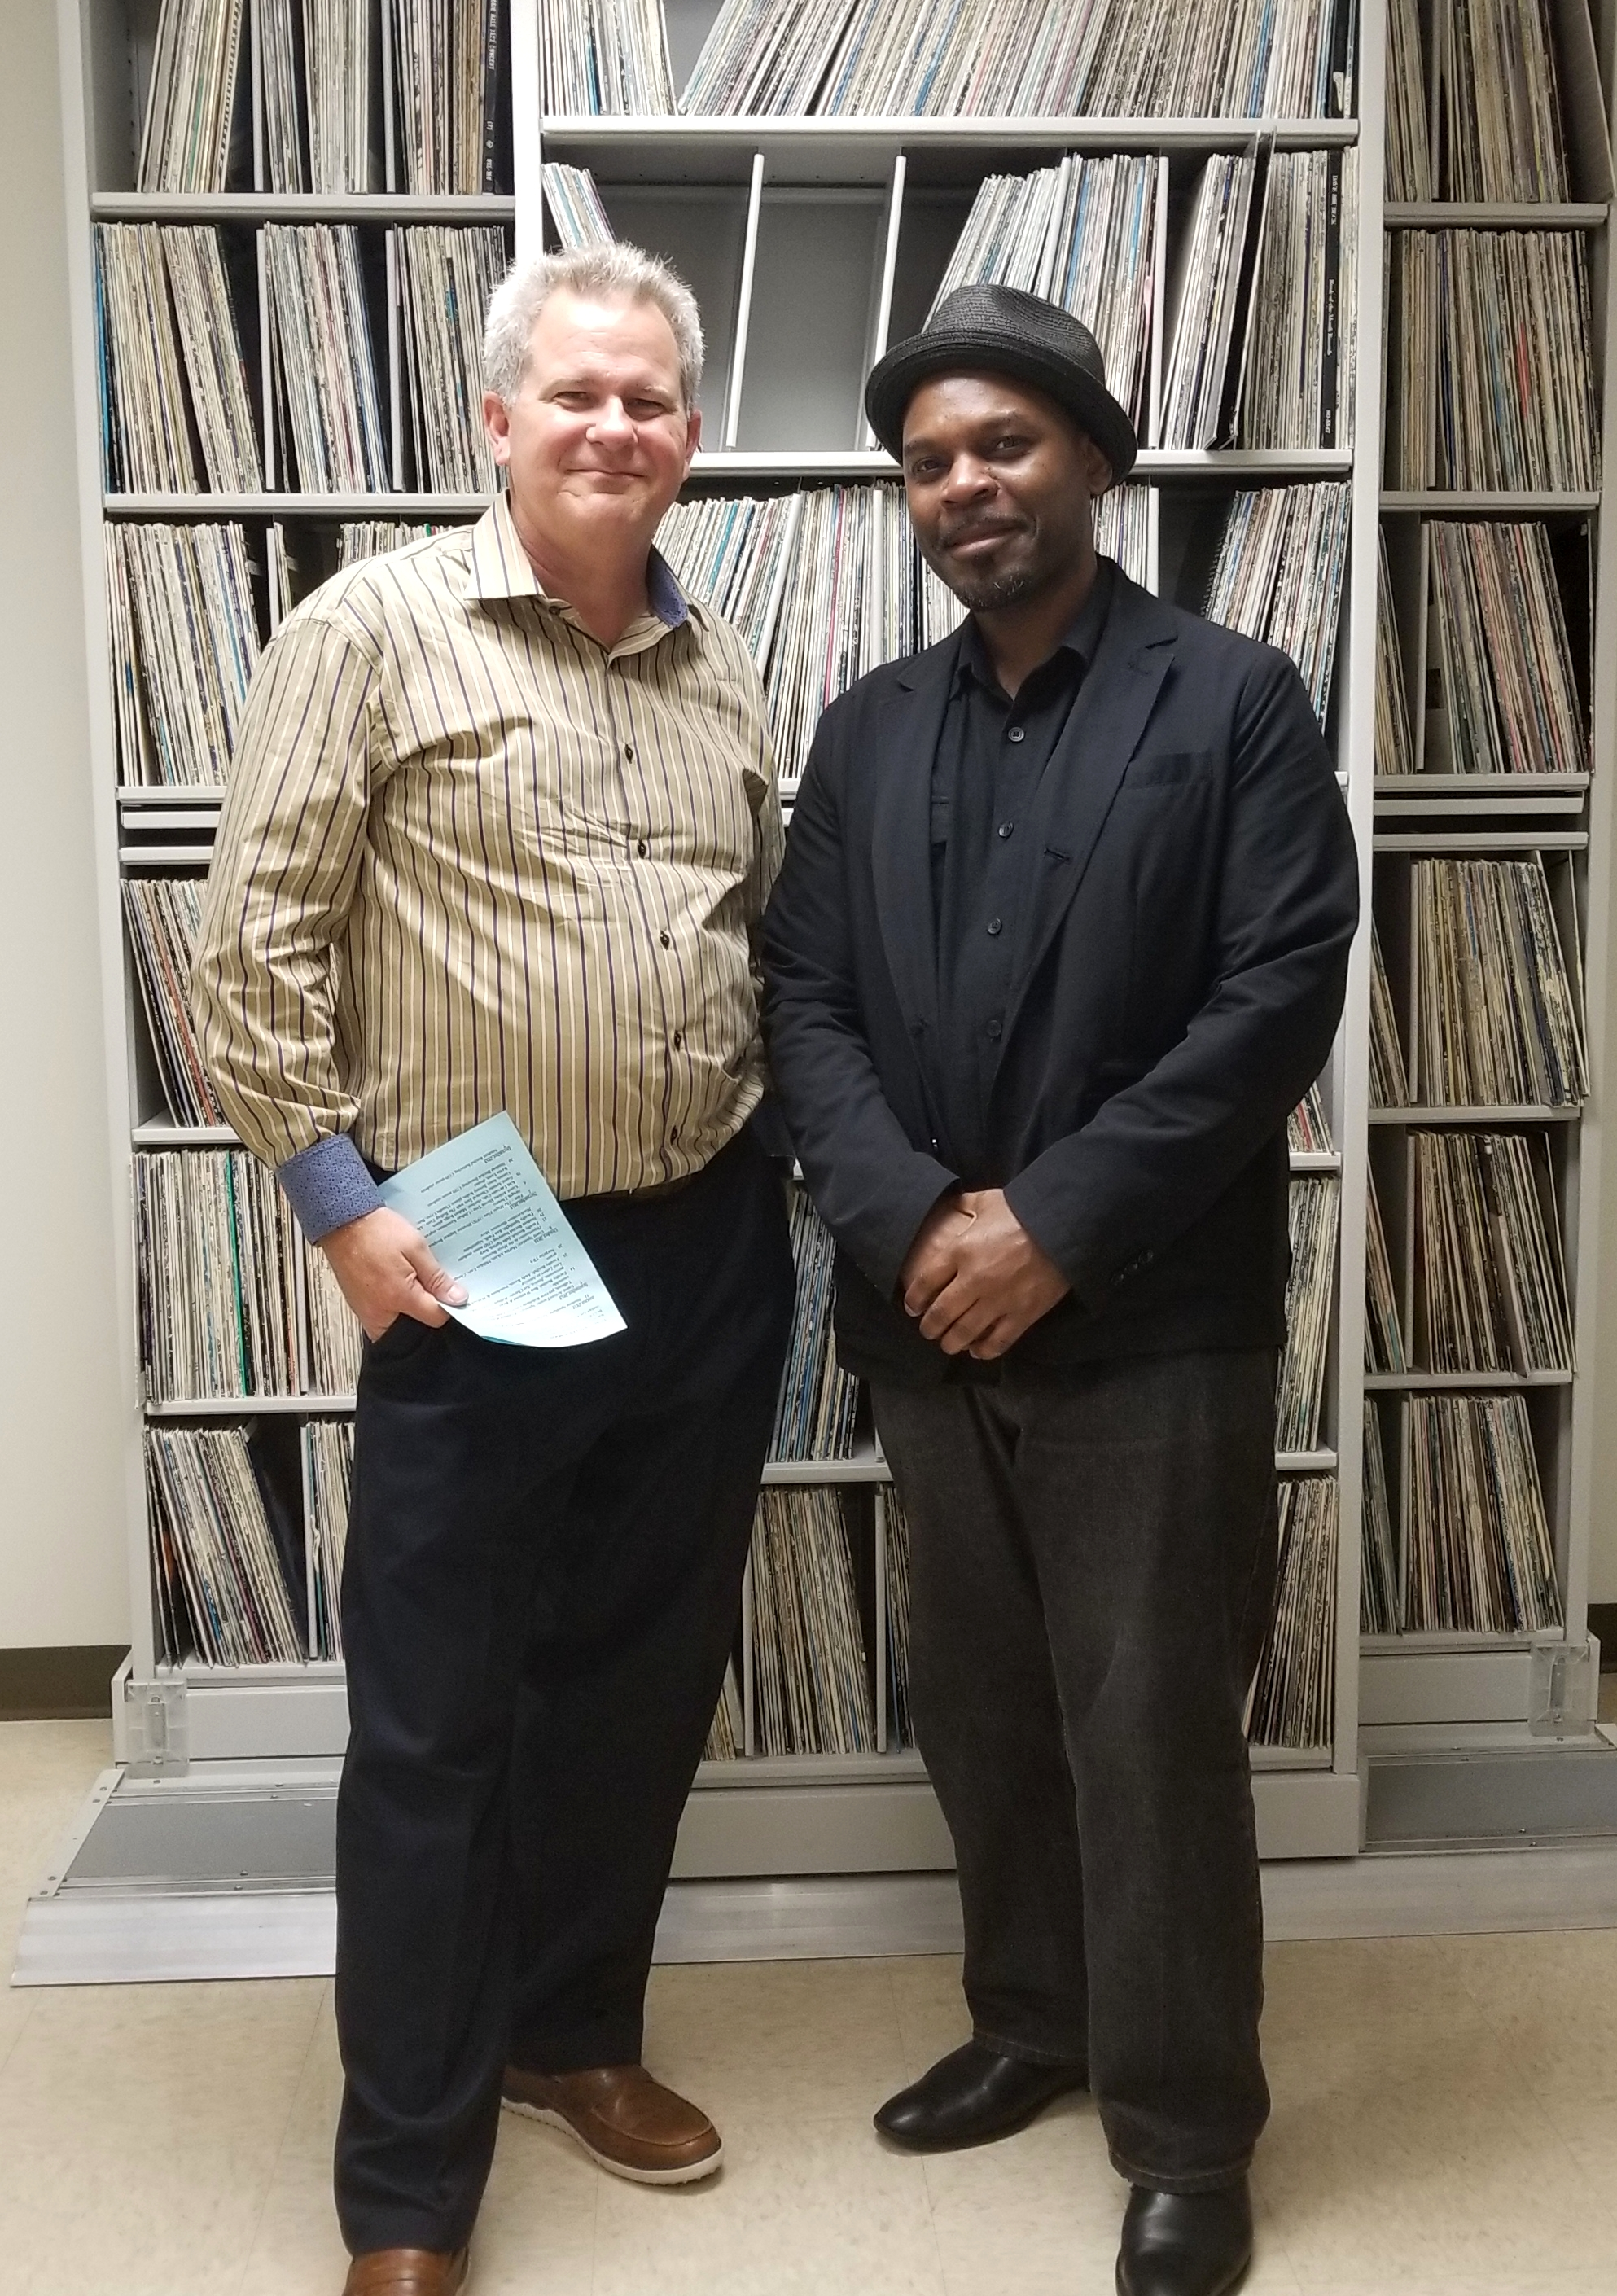 College of DuPage music professor Tom Tallman and composer/pianist Reginald Robinson